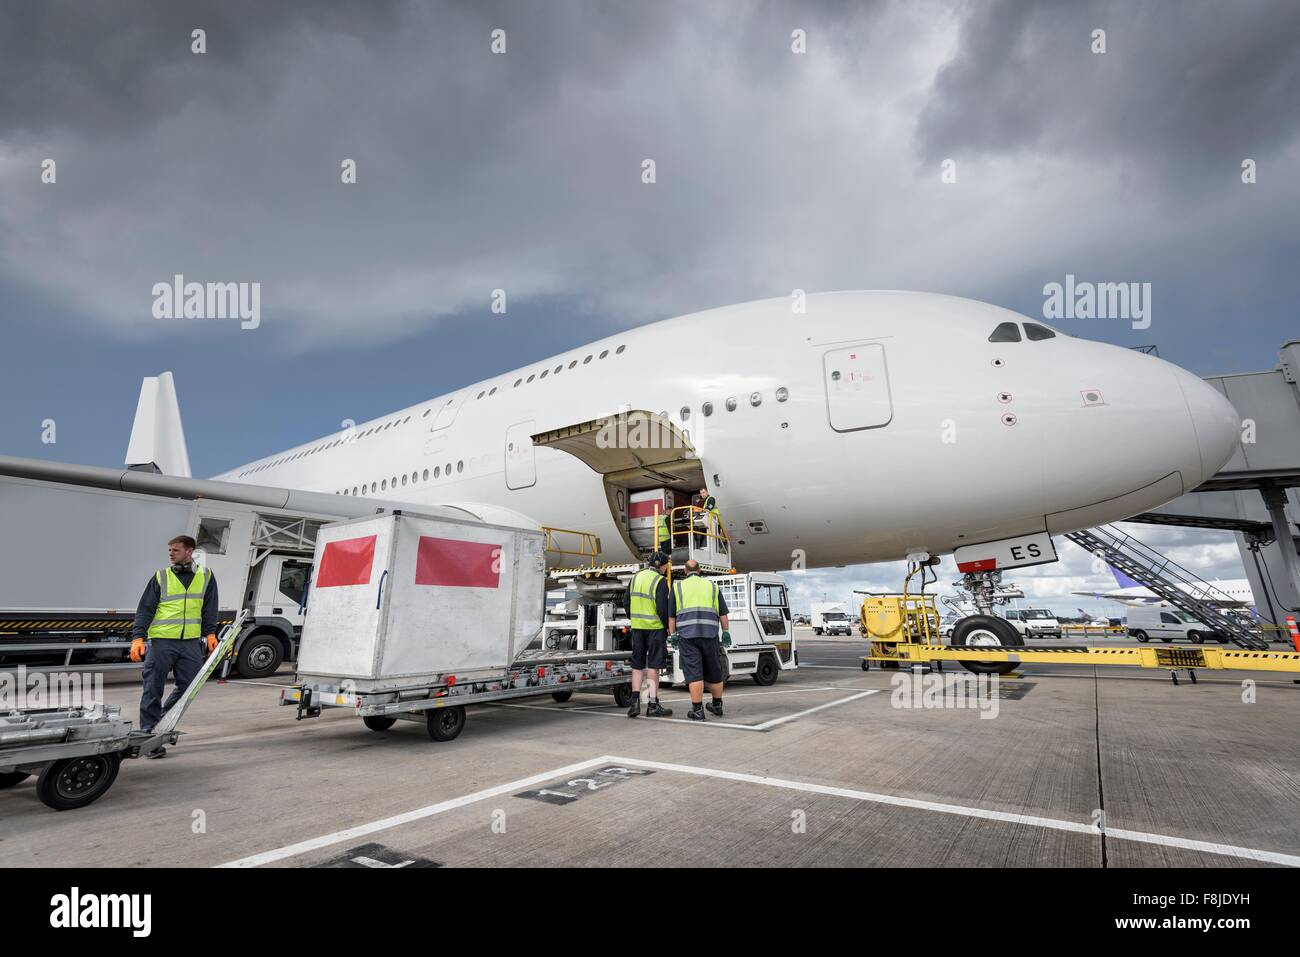 Ground crew loading freight onto A380 aircraft Stock Photo